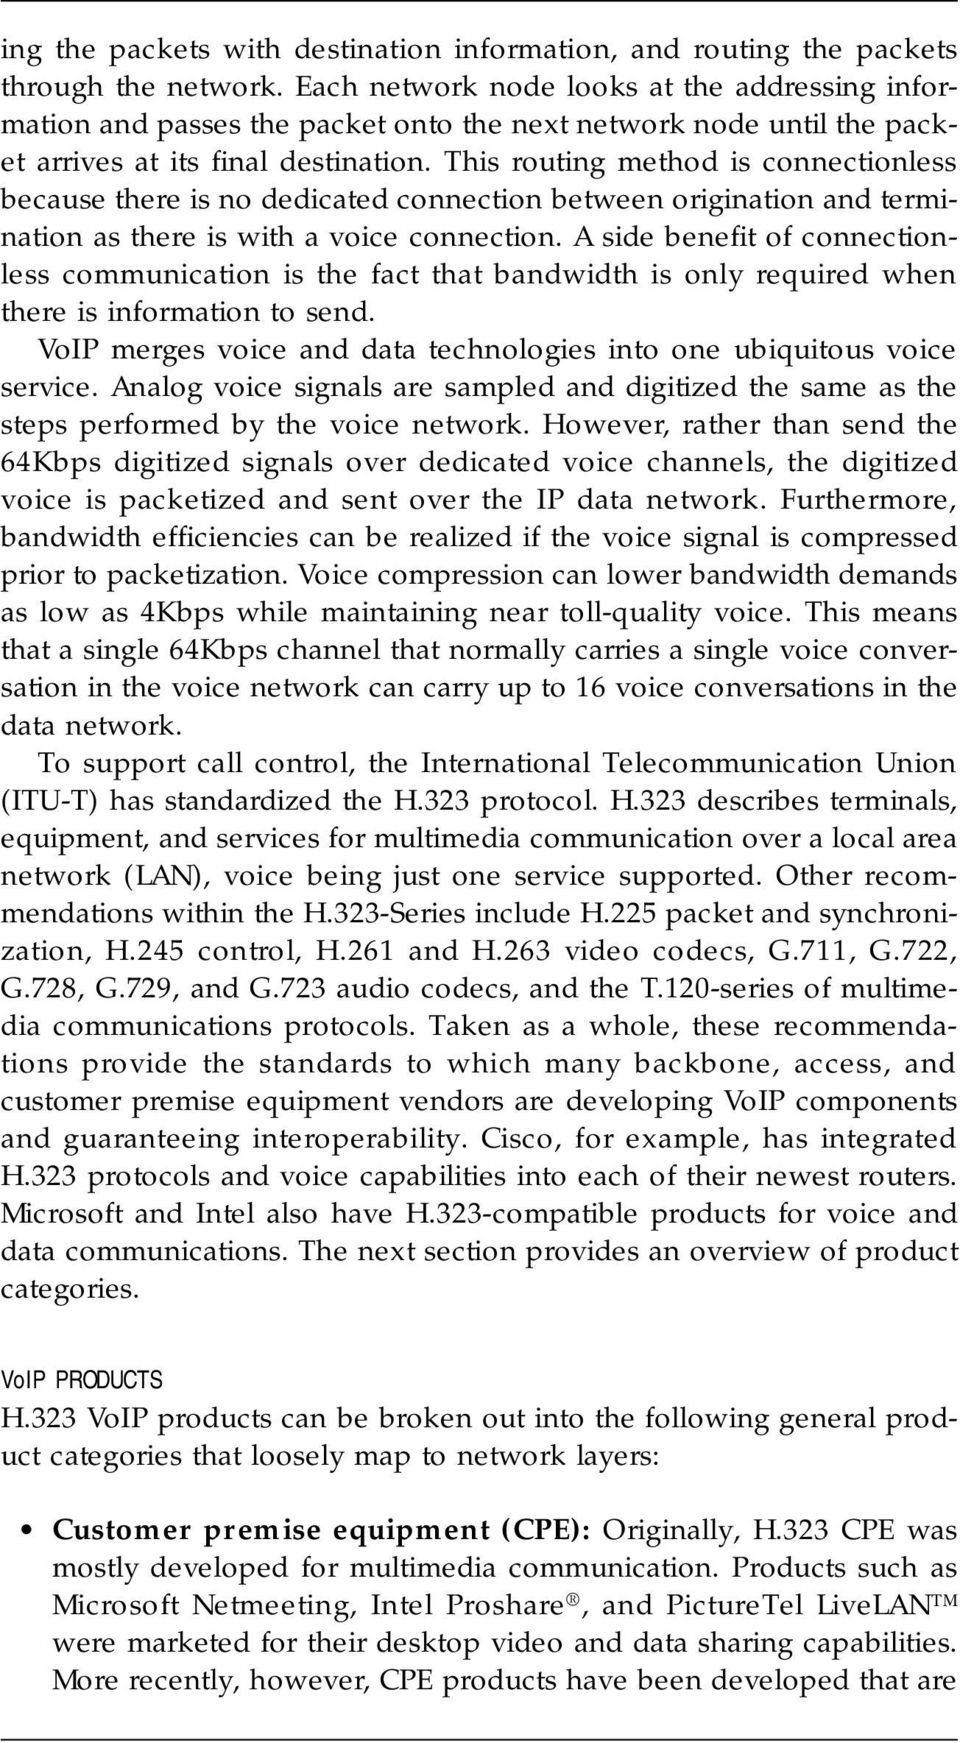 This routing method is connectionless because there is no dedicated connection between origination and termination as there is with a voice connection.